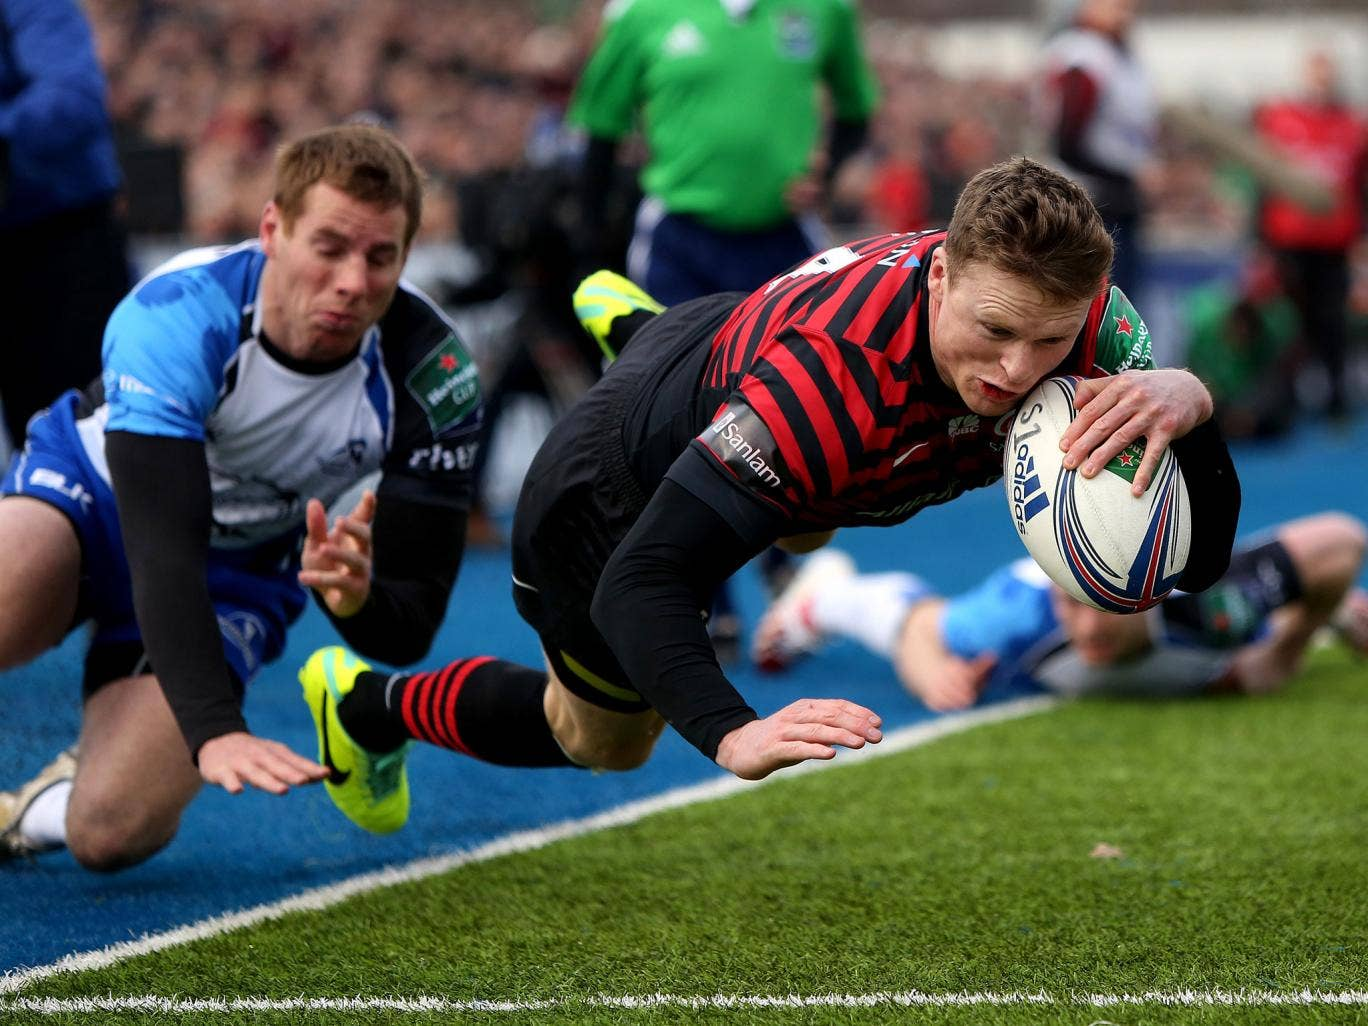 Saracens' Chris Ashton evades the tackle of Gavin Duffy to score the opening try